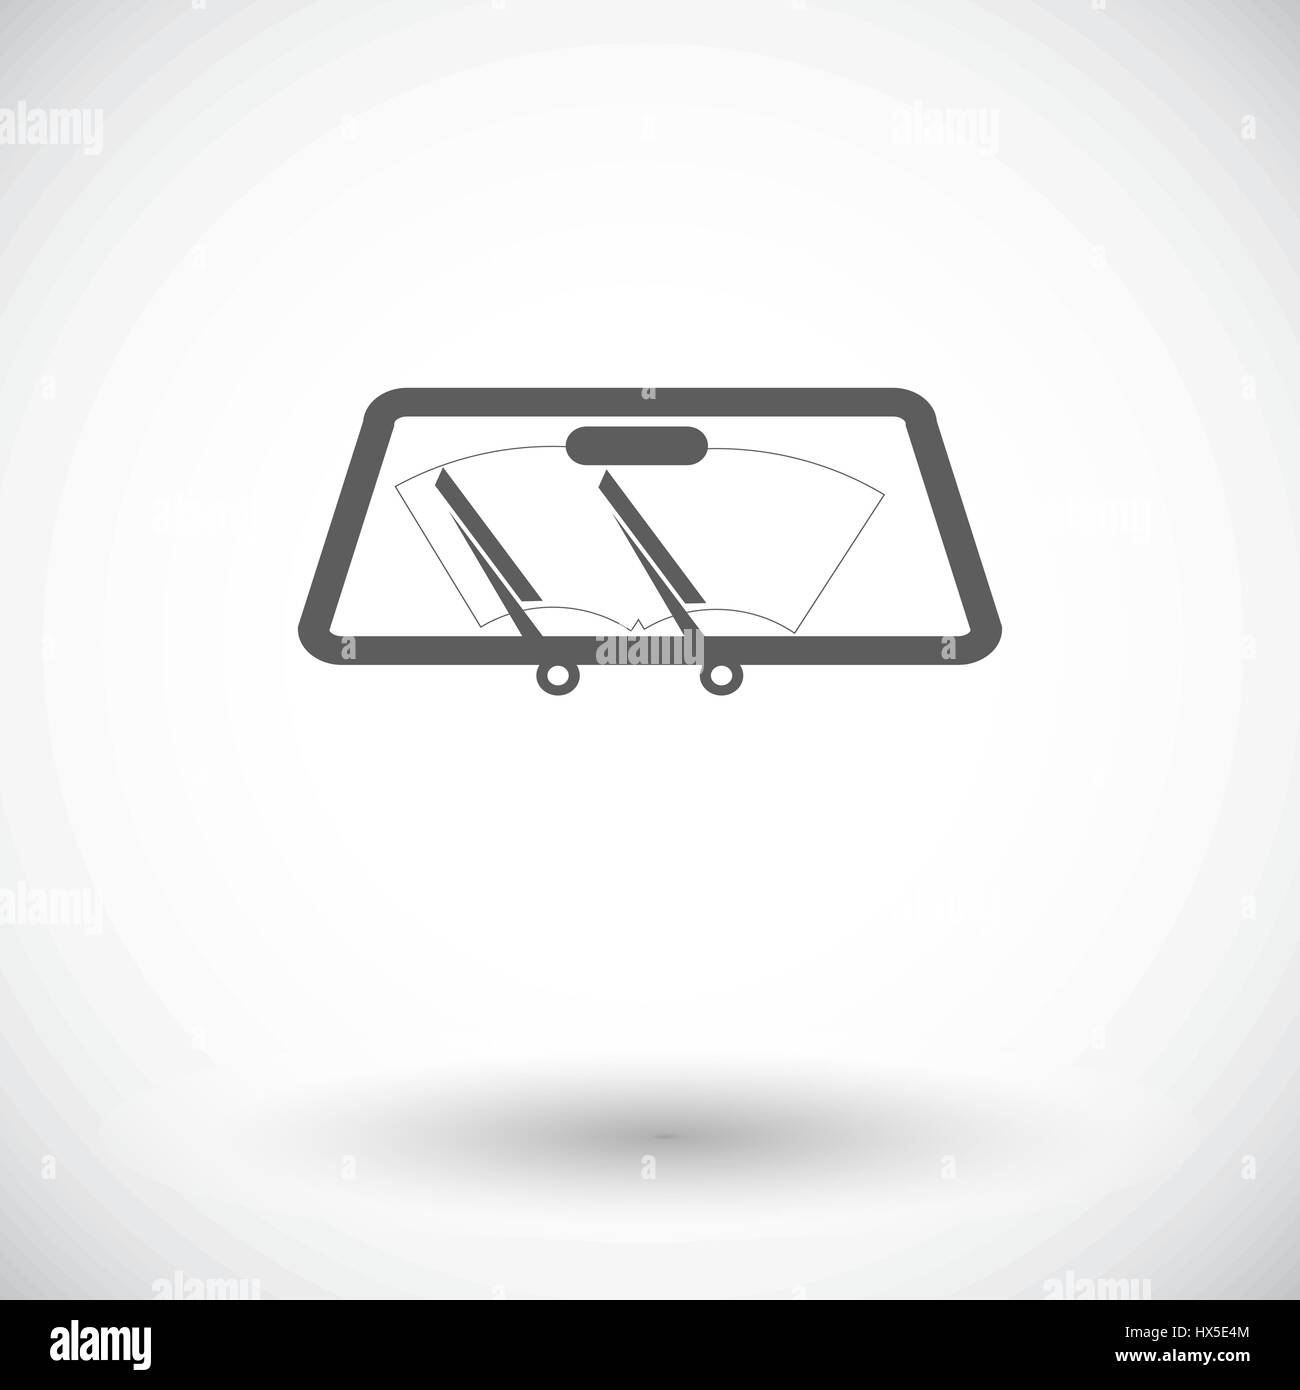 Single Wiper Car Stock Photos Images Alamy Wipercar Wiring Diagram Flat Icon On White Background Vector Illustration Image